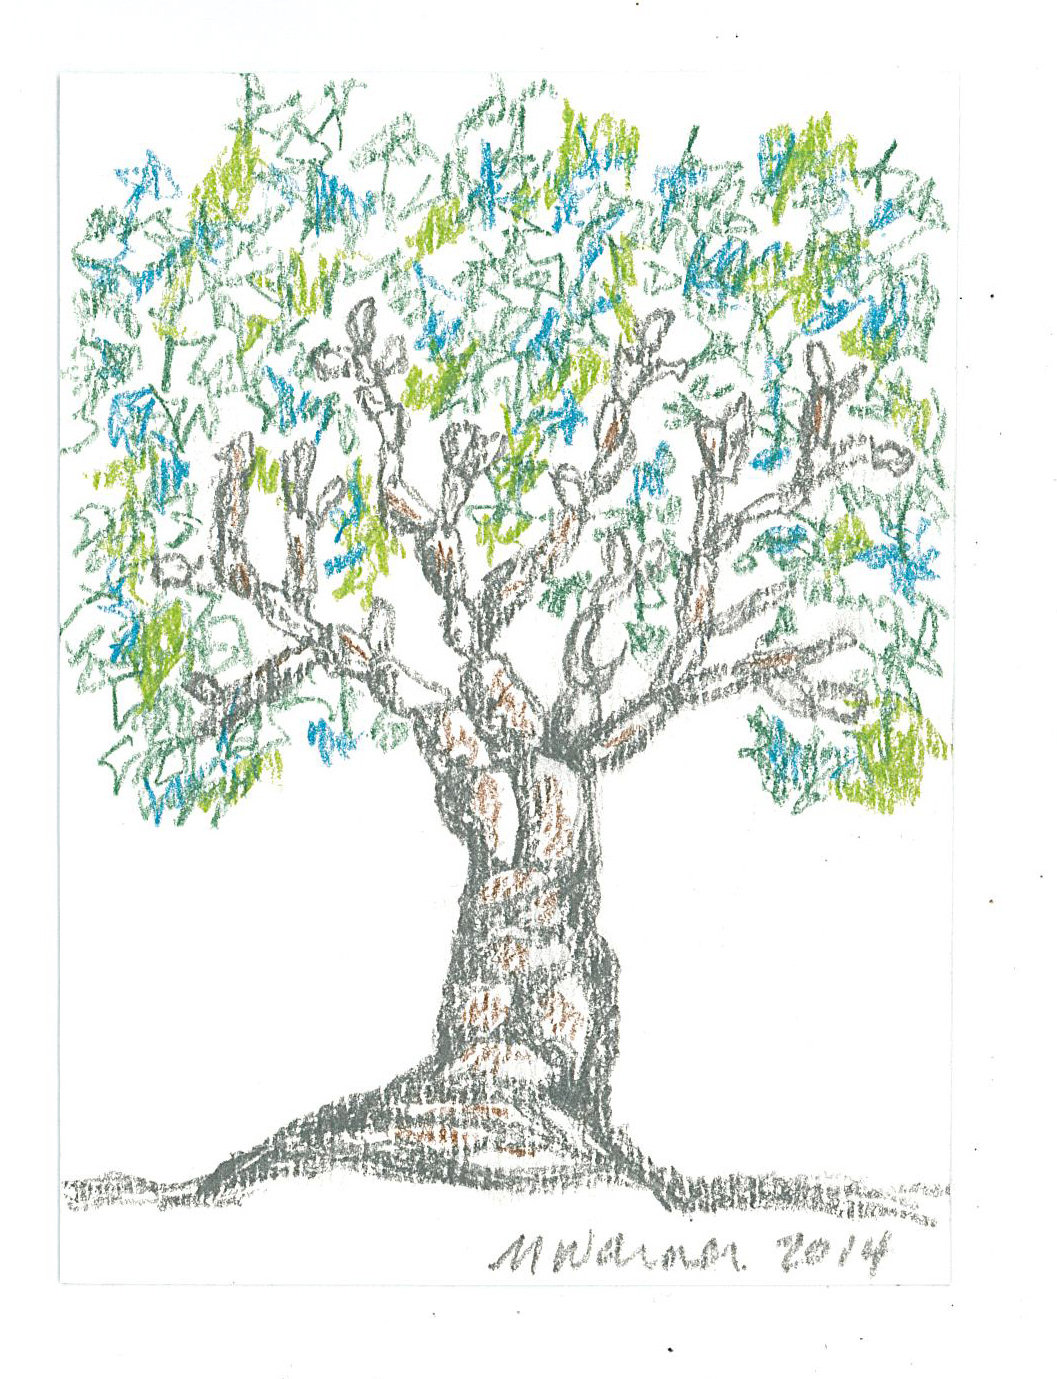 Tree, in colored pencil, by Mary Warner.